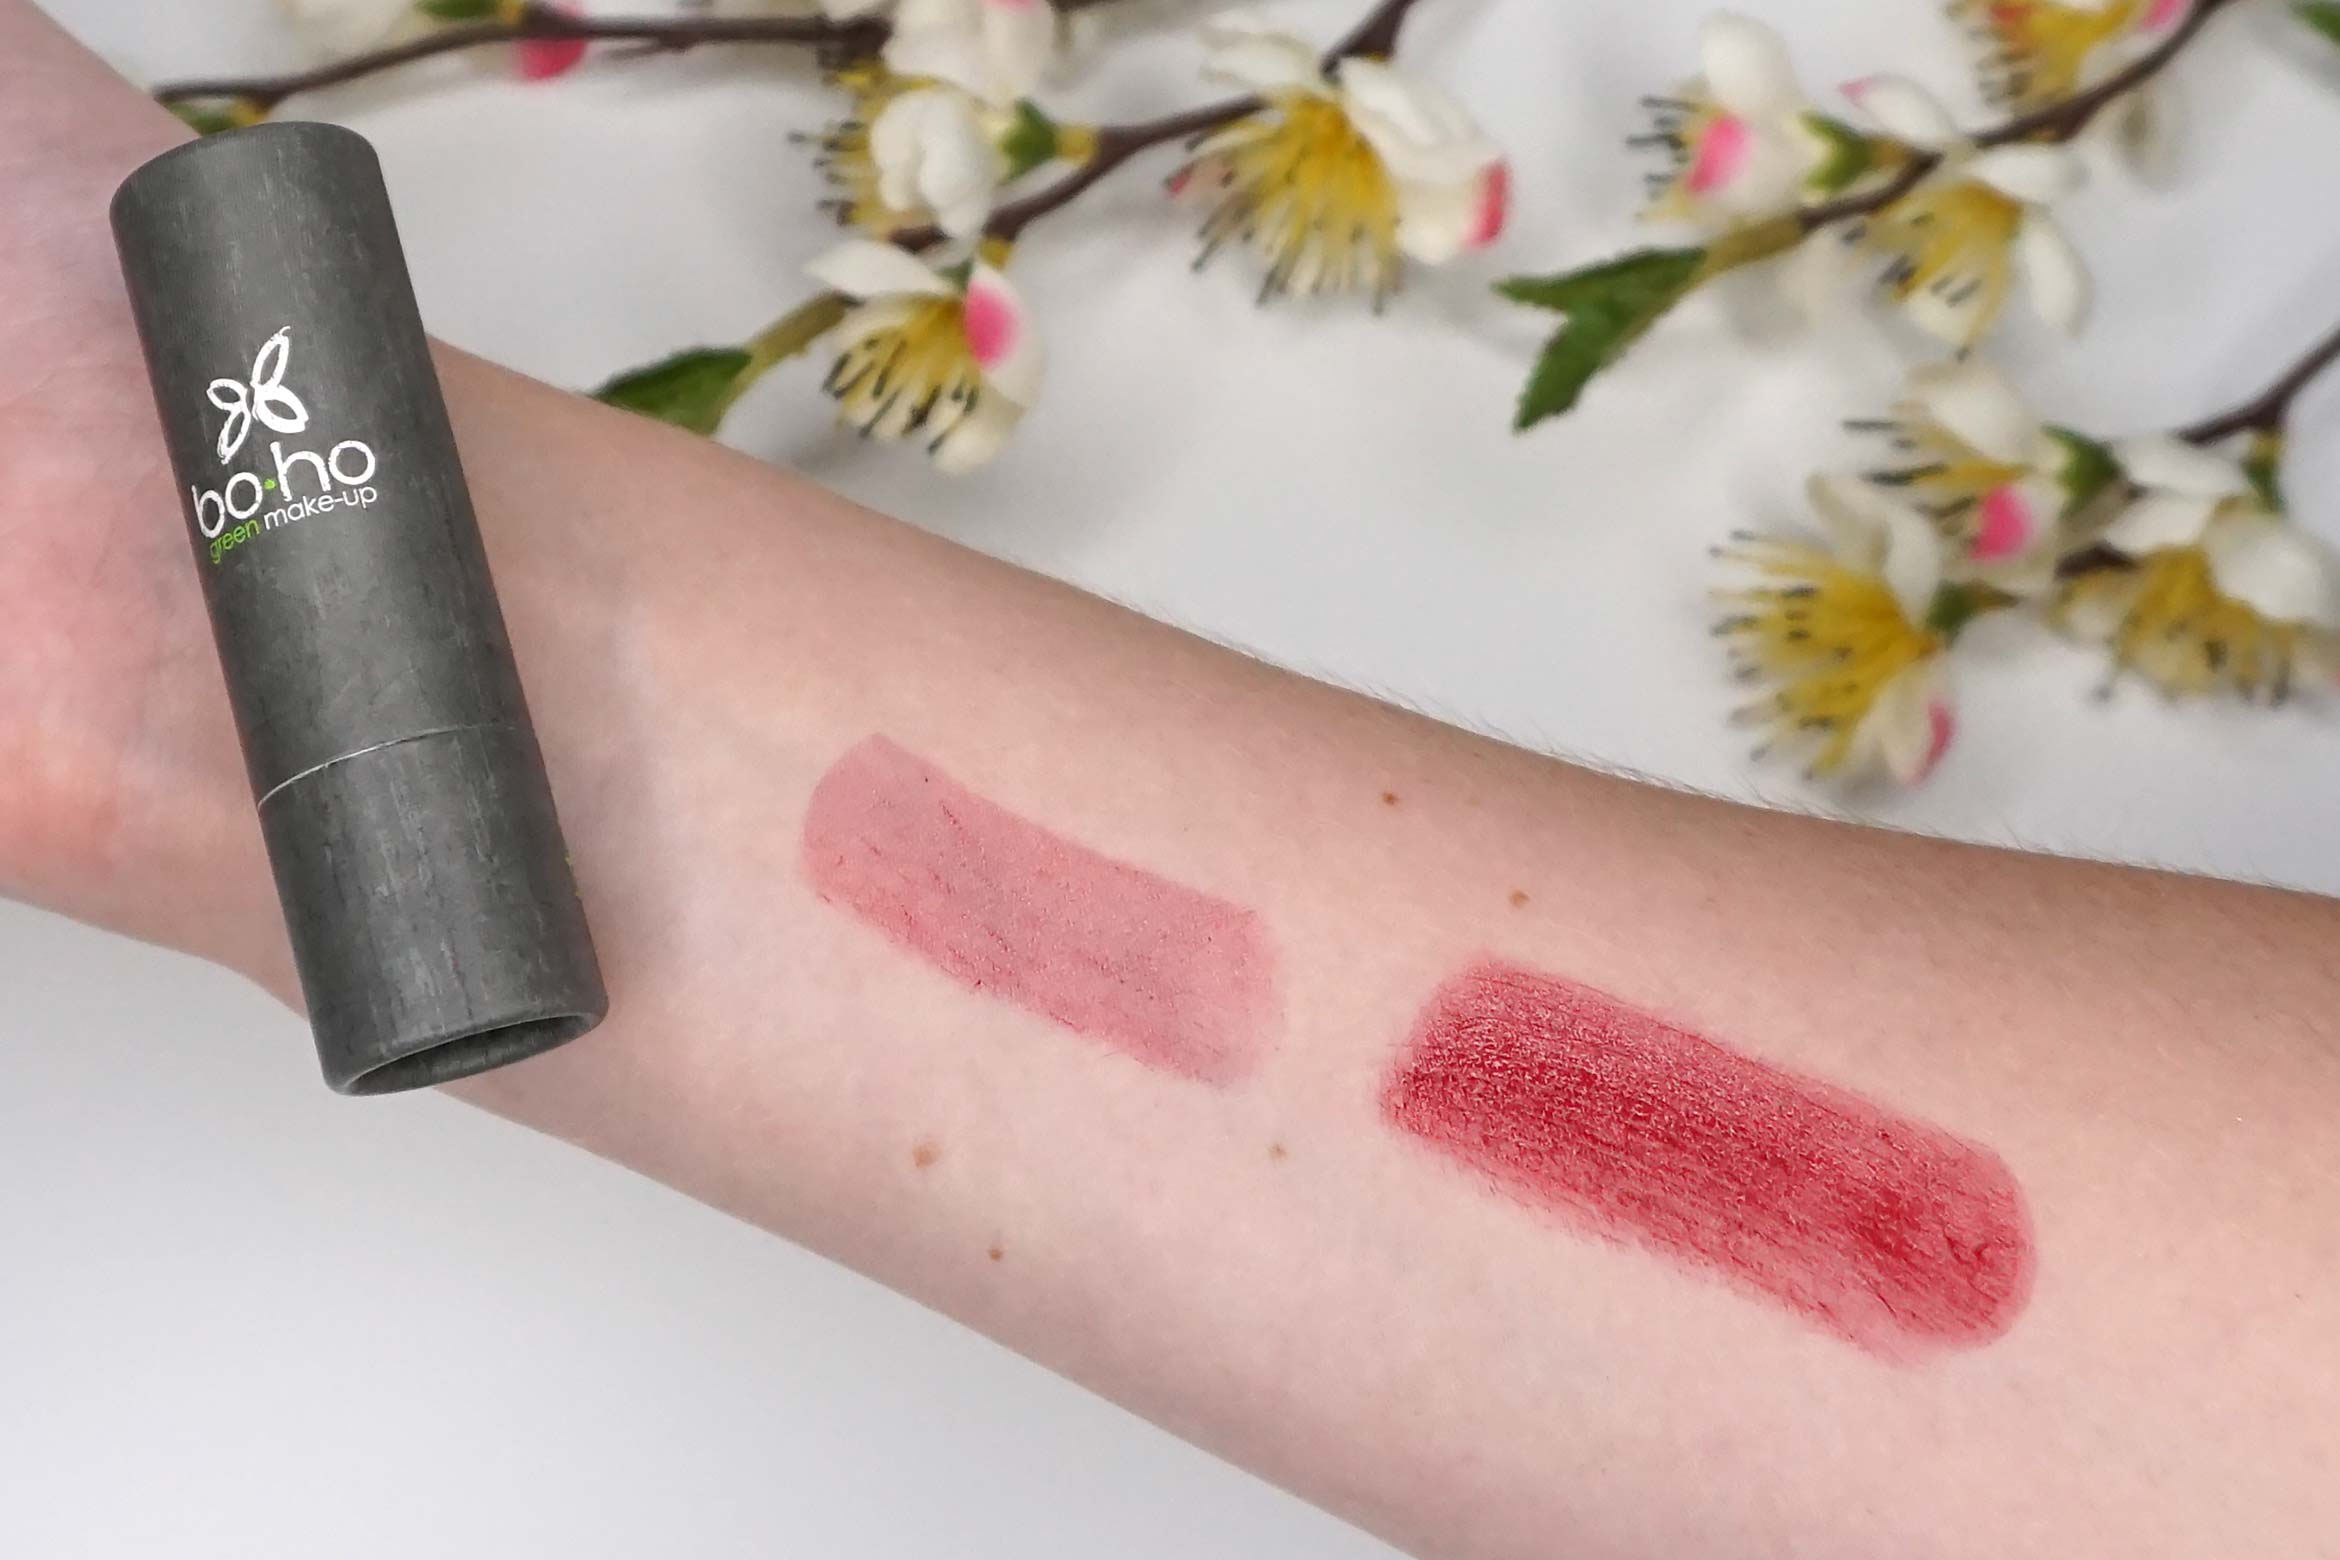 boho-lipstick-Figue-309-swatch-review